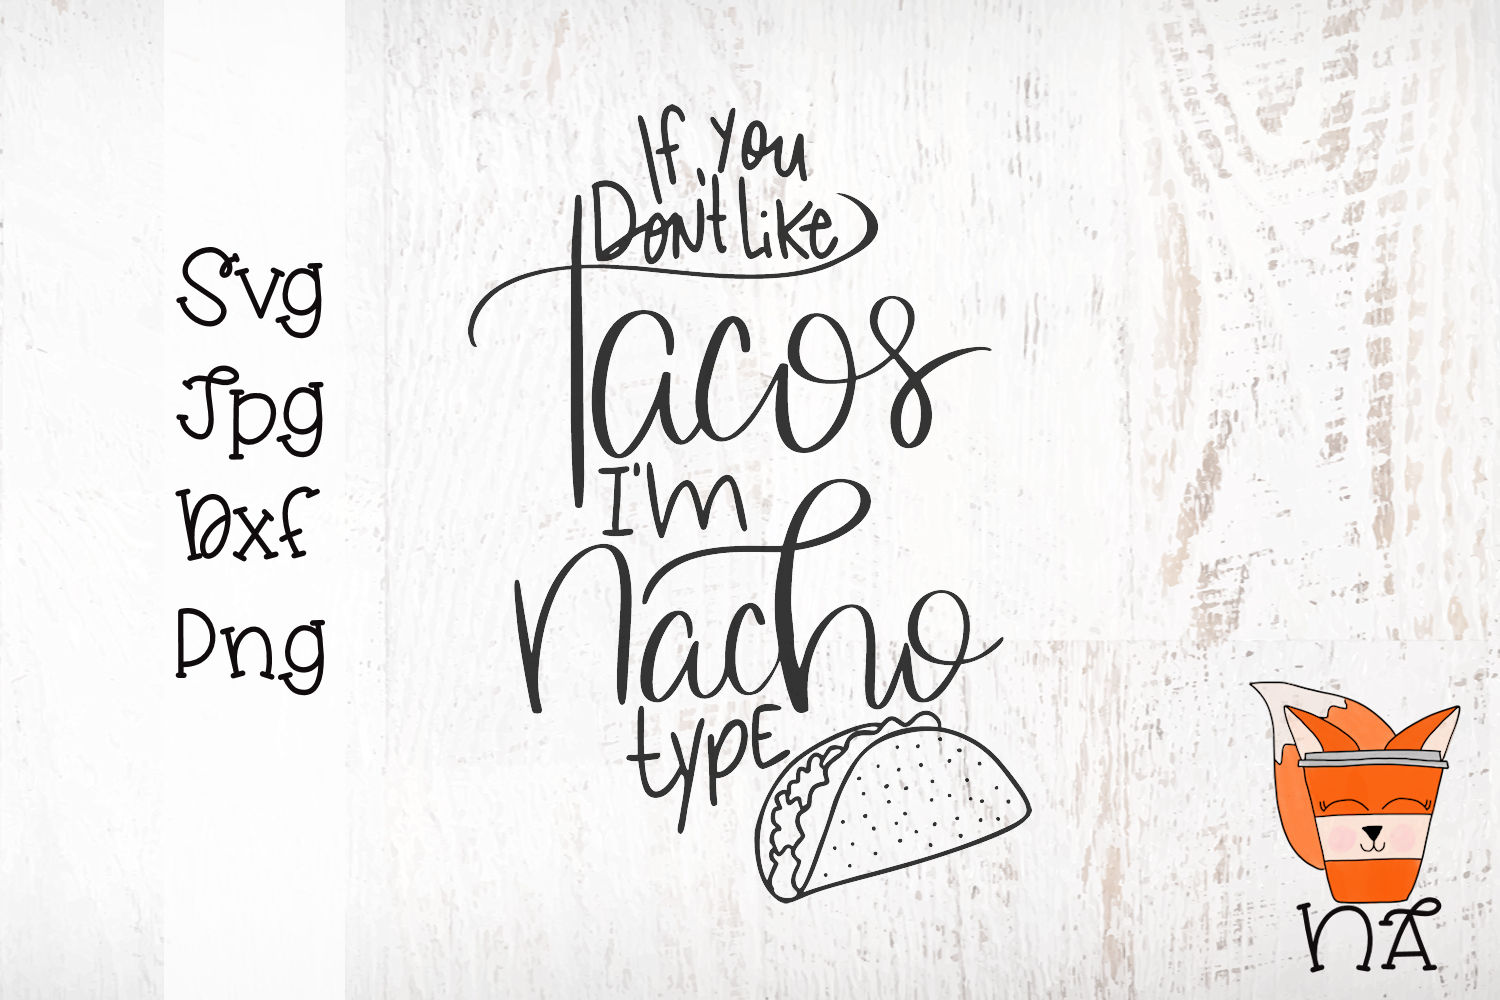 If You Don't Like Taco's I'm Nacho Type - Handlettered SVG example image 3